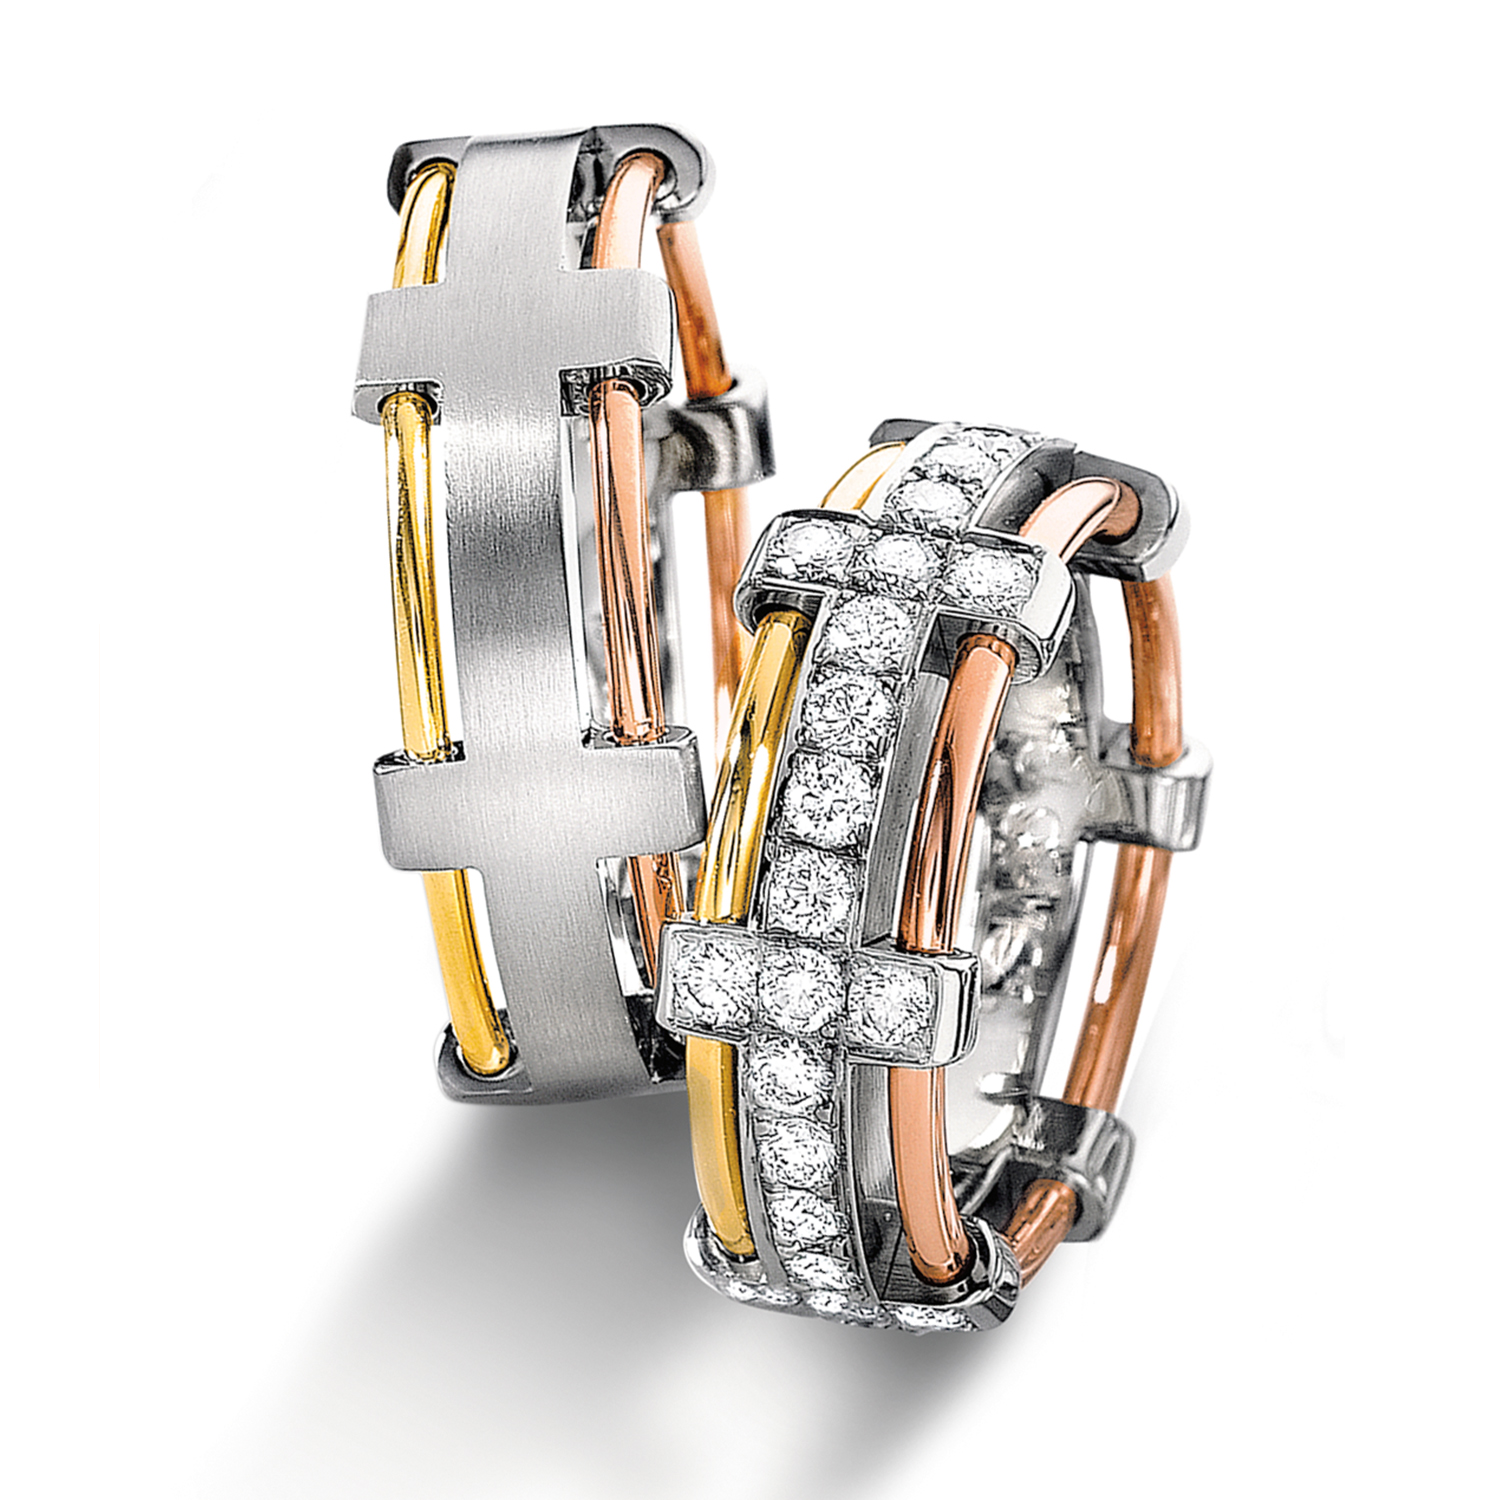 Diamond rings in gold, platinum, palladium, carbon and black with diamonds Furrer Jacot